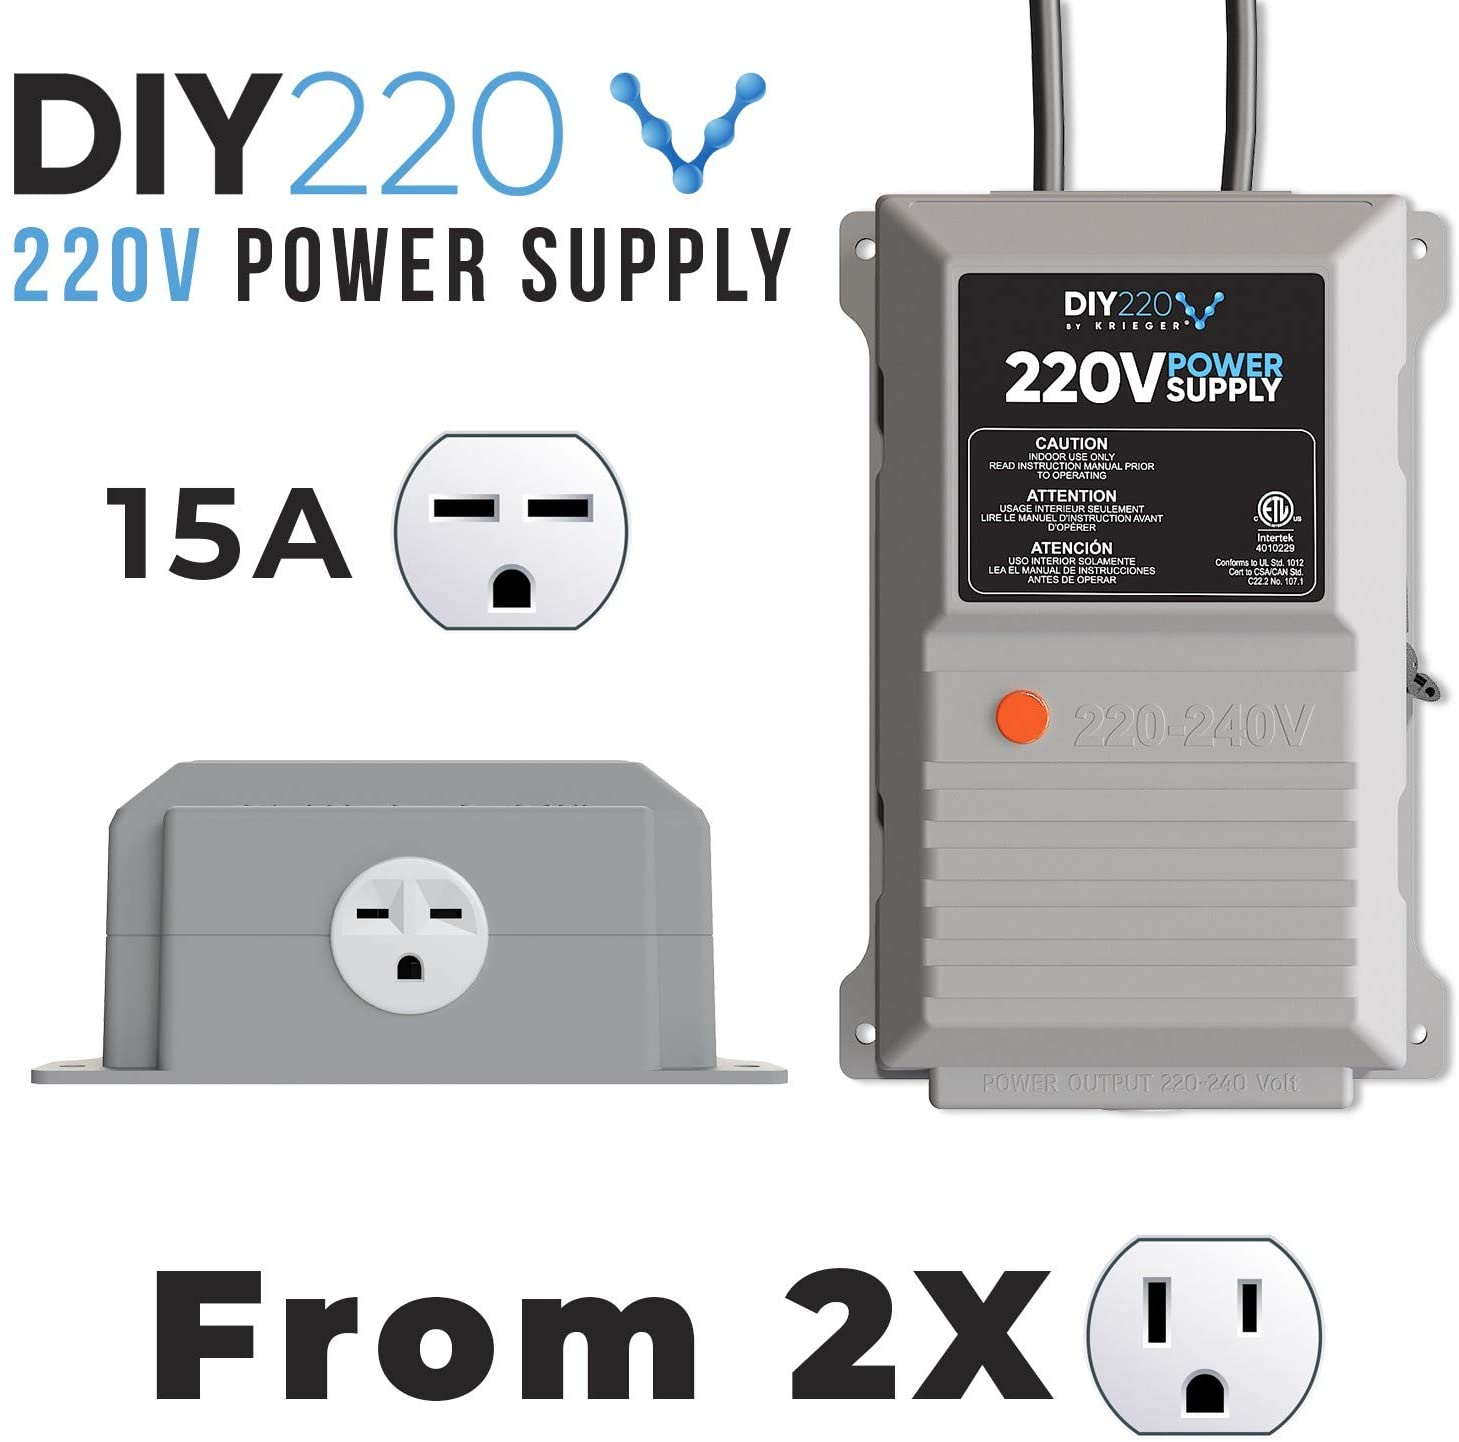 diy220 quick connect 220v power supply power 208 240 volts from two s